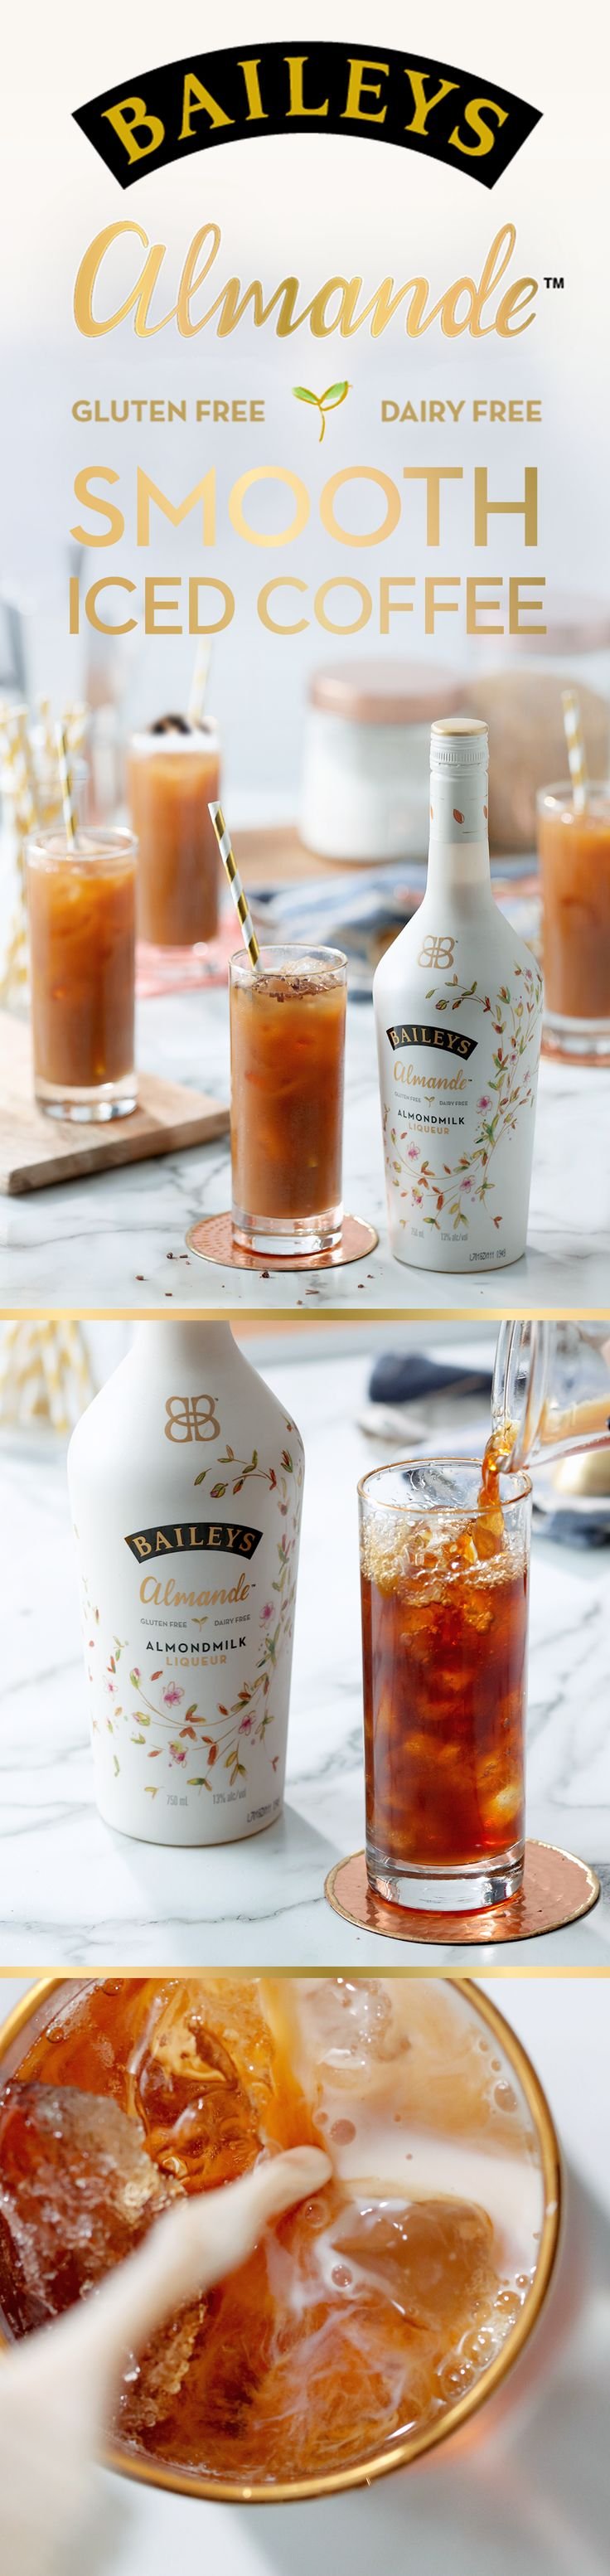 Iced coffee season is here, and NEW Baileys Almande wants in. Dairy free, gluten free, and vegan, this light-tasting almondmilk liqueur can add a deliciously smooth finish to your favorite drink. Simply mix 2 oz Baileys Almande with 1 oz Gevalia Cold Brew http://www.wartalooza.com/treatments/compound-w-wart-remover